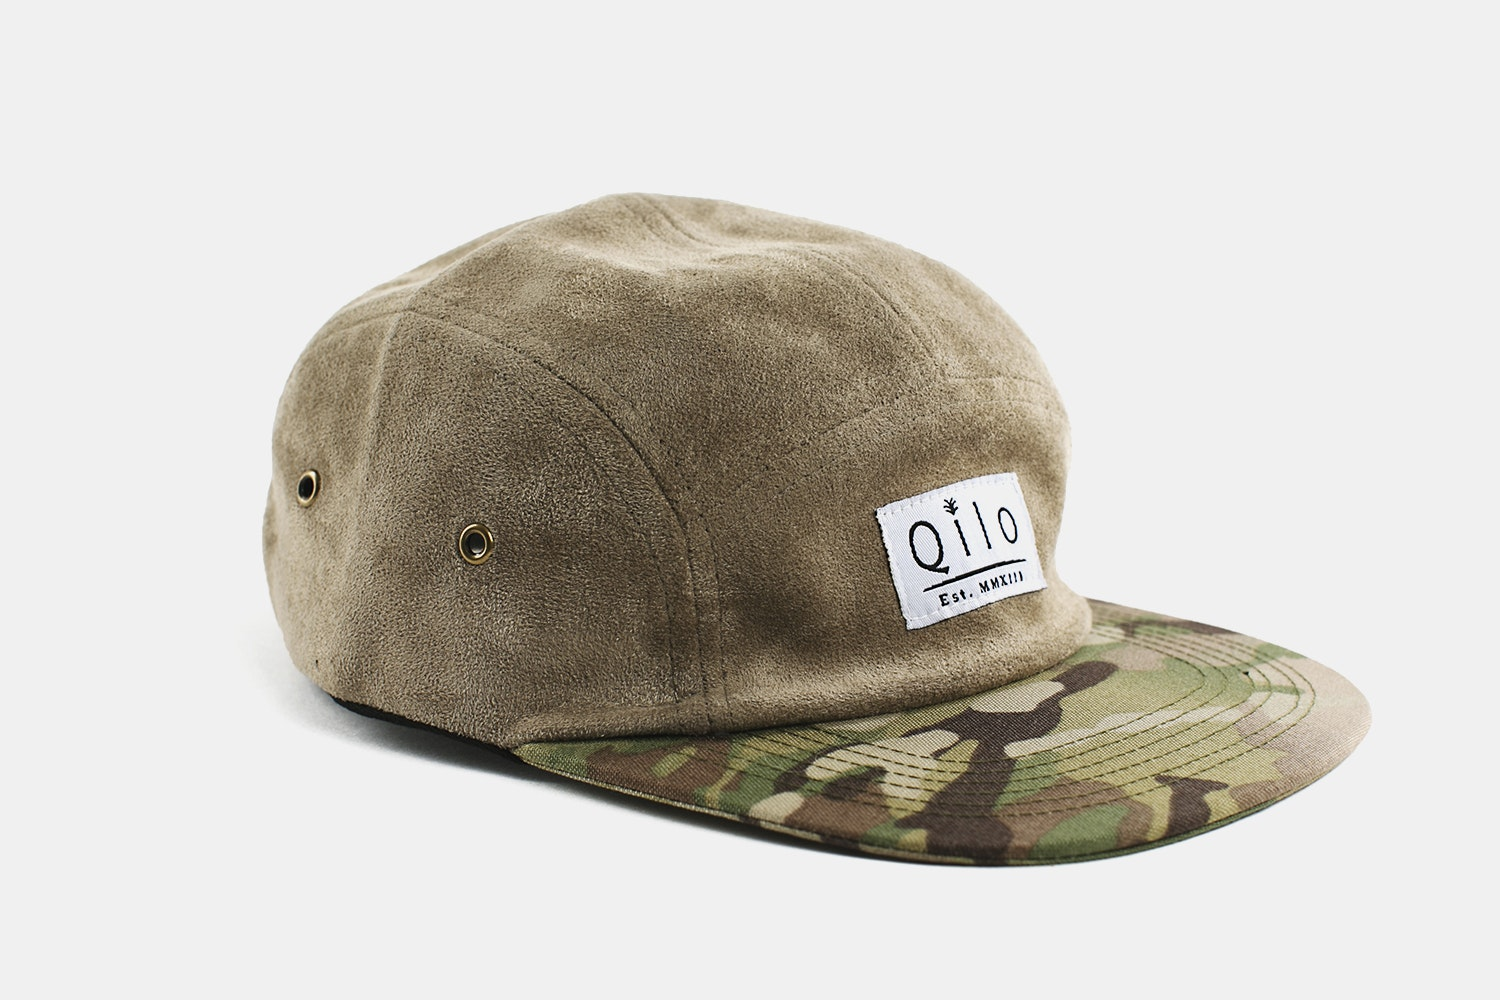 Two-Tone Camp Cap - Desert & Multicam